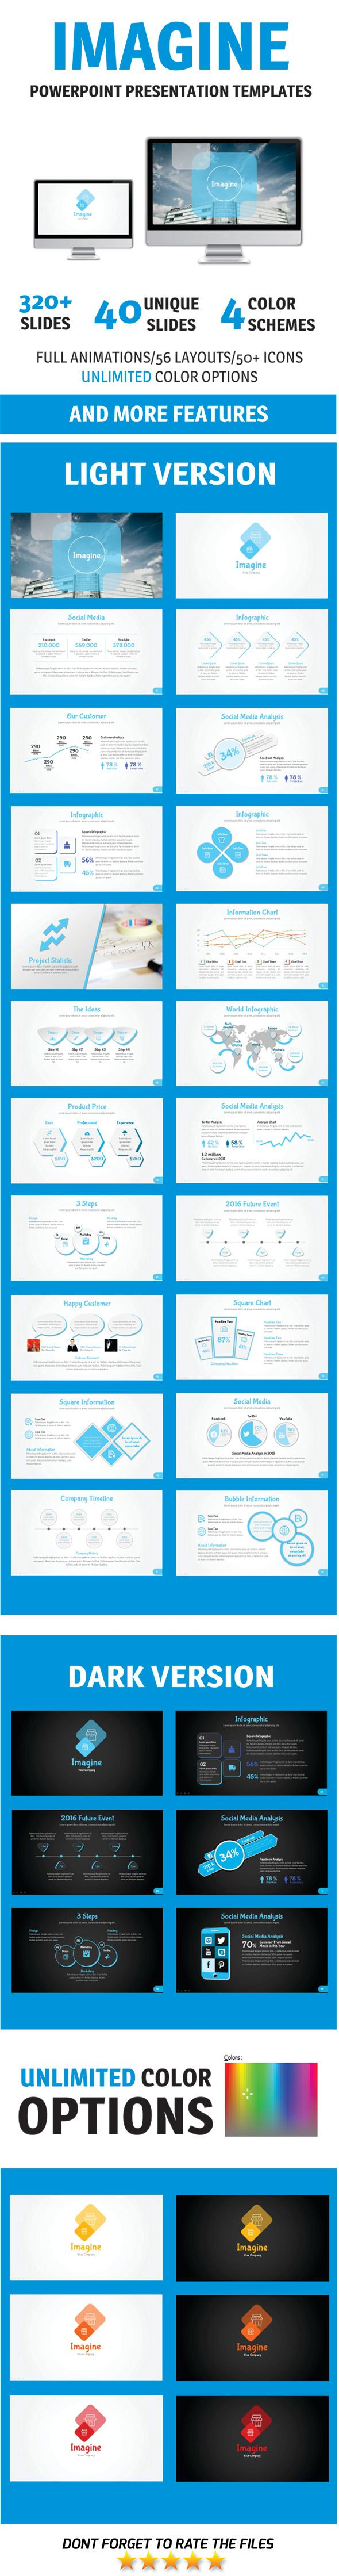 Imagine Presentation Template #design Download: http://graphicriver.net/item/imagine-presentation-template/11254483?ref=ksioks